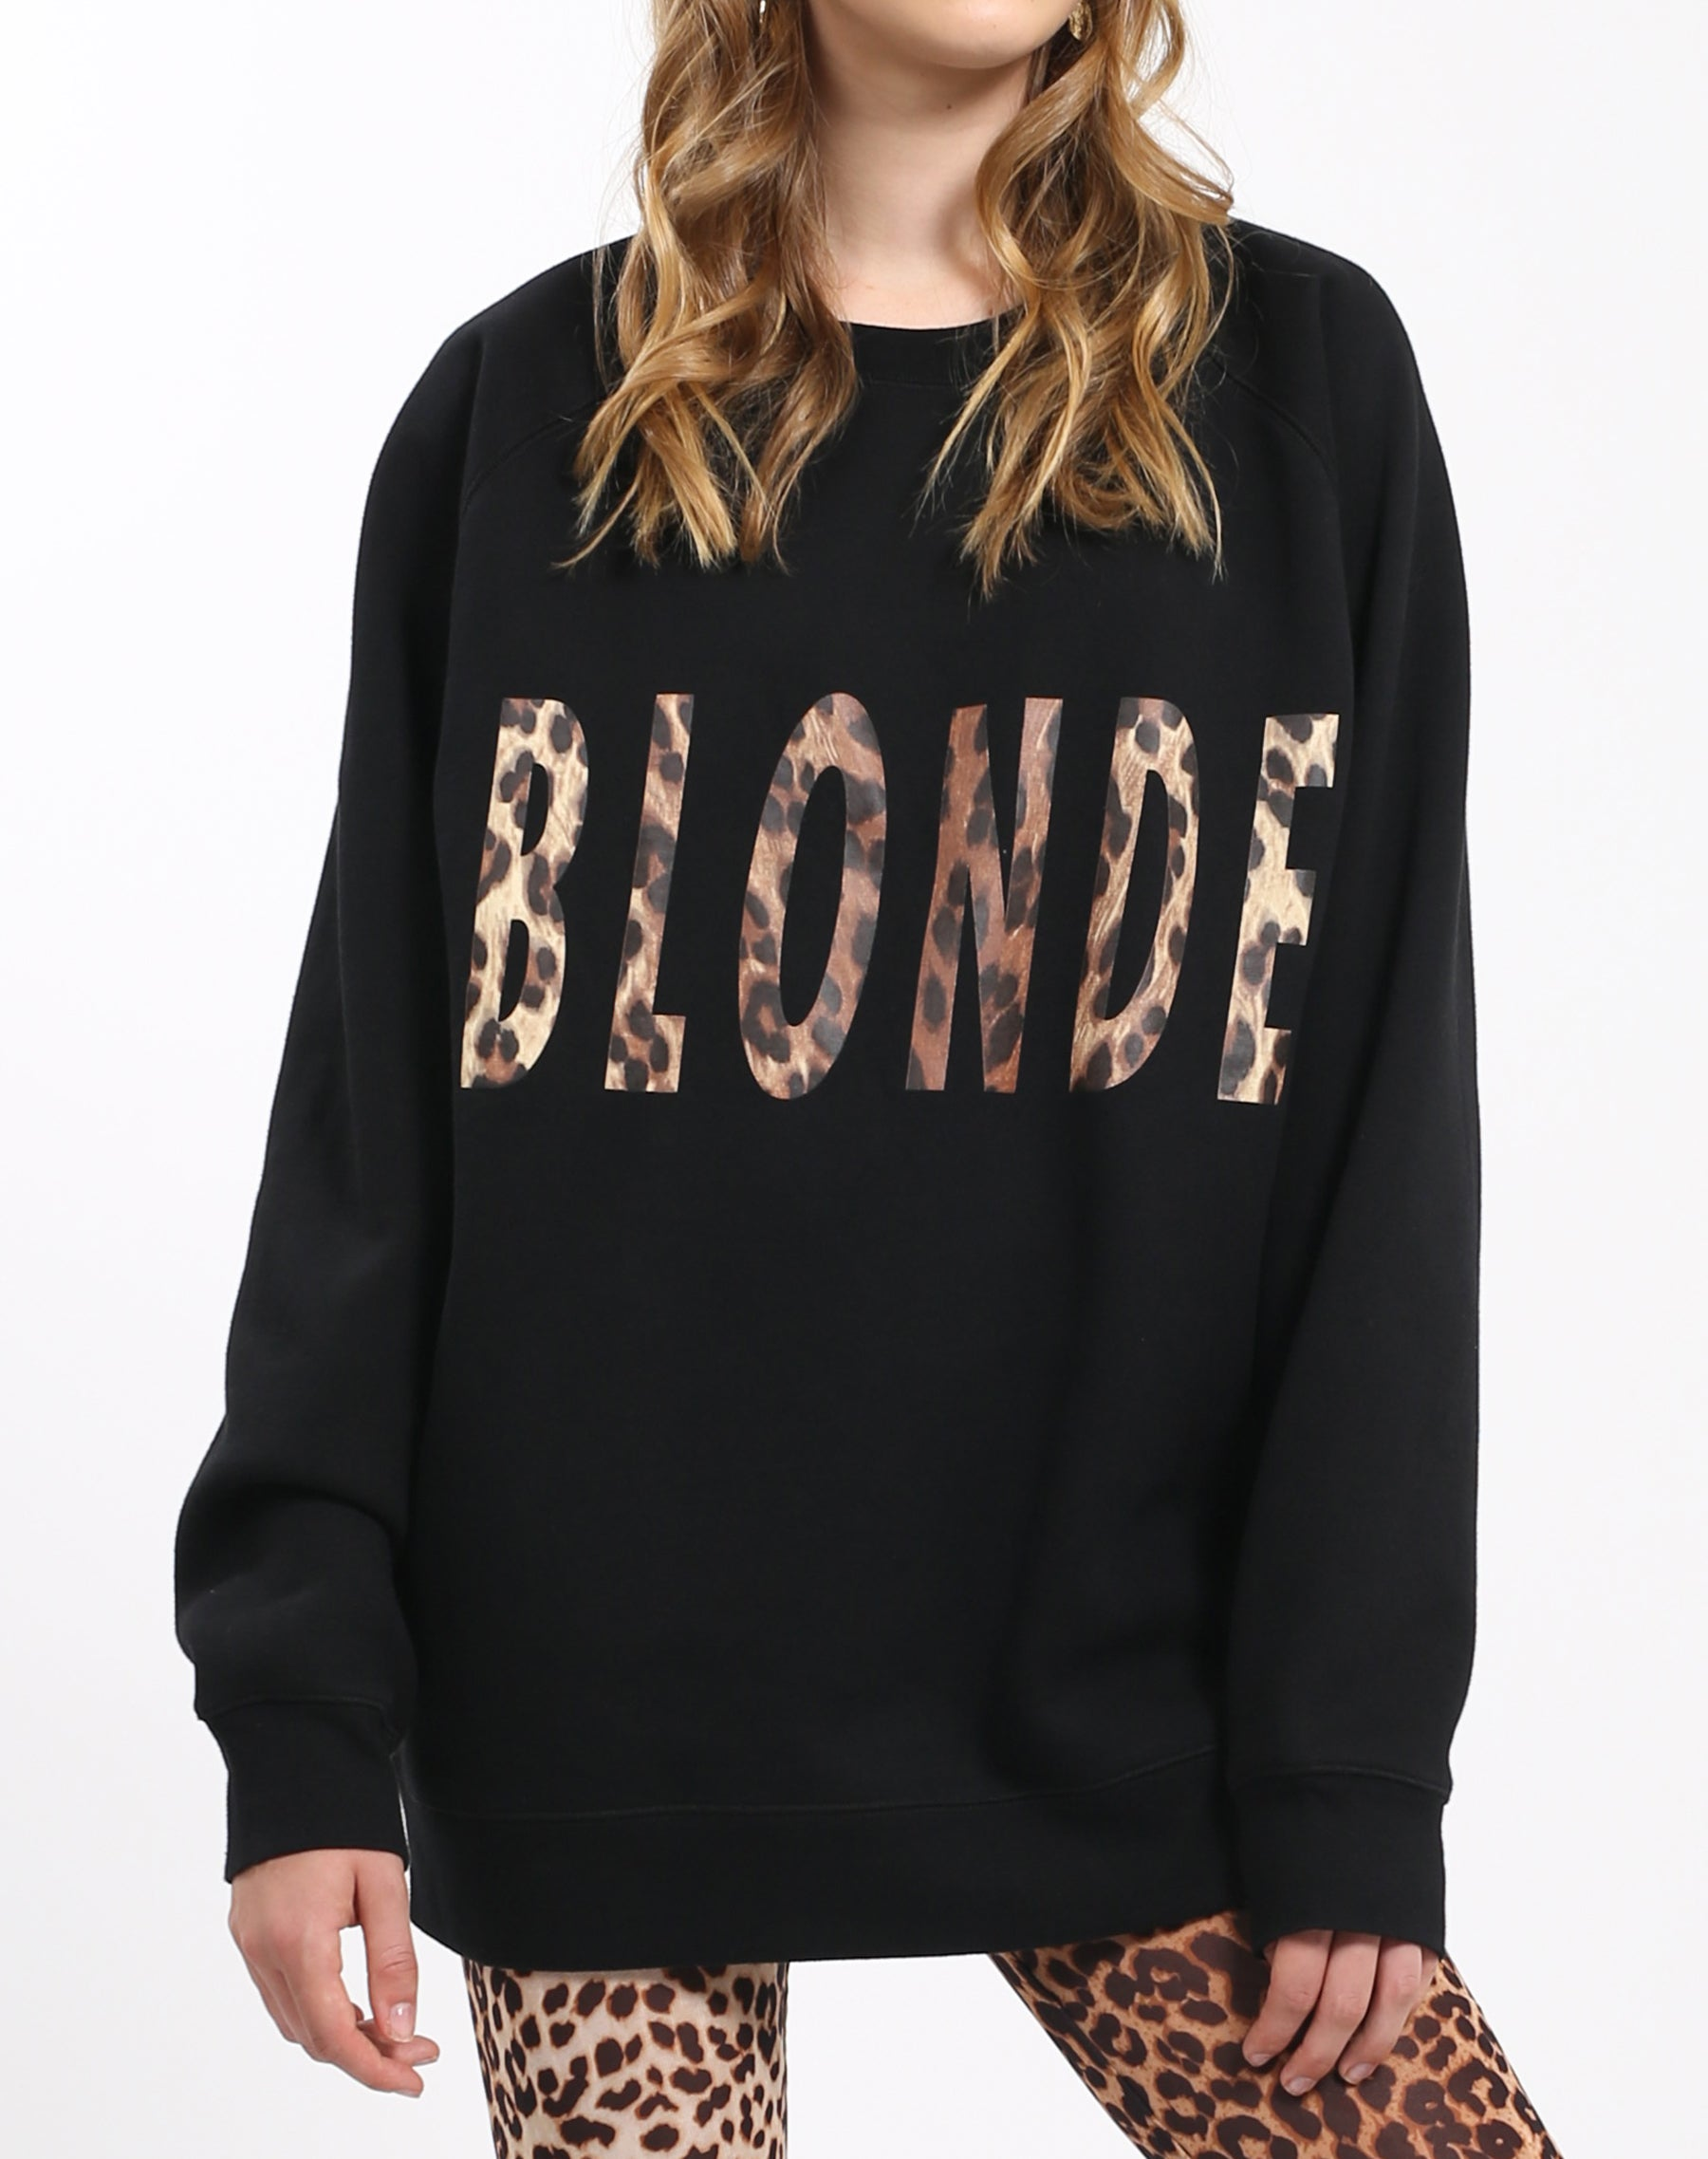 Photo 3 of the Blonde big sister crew neck sweatshirt in leopard by Brunette the Label.